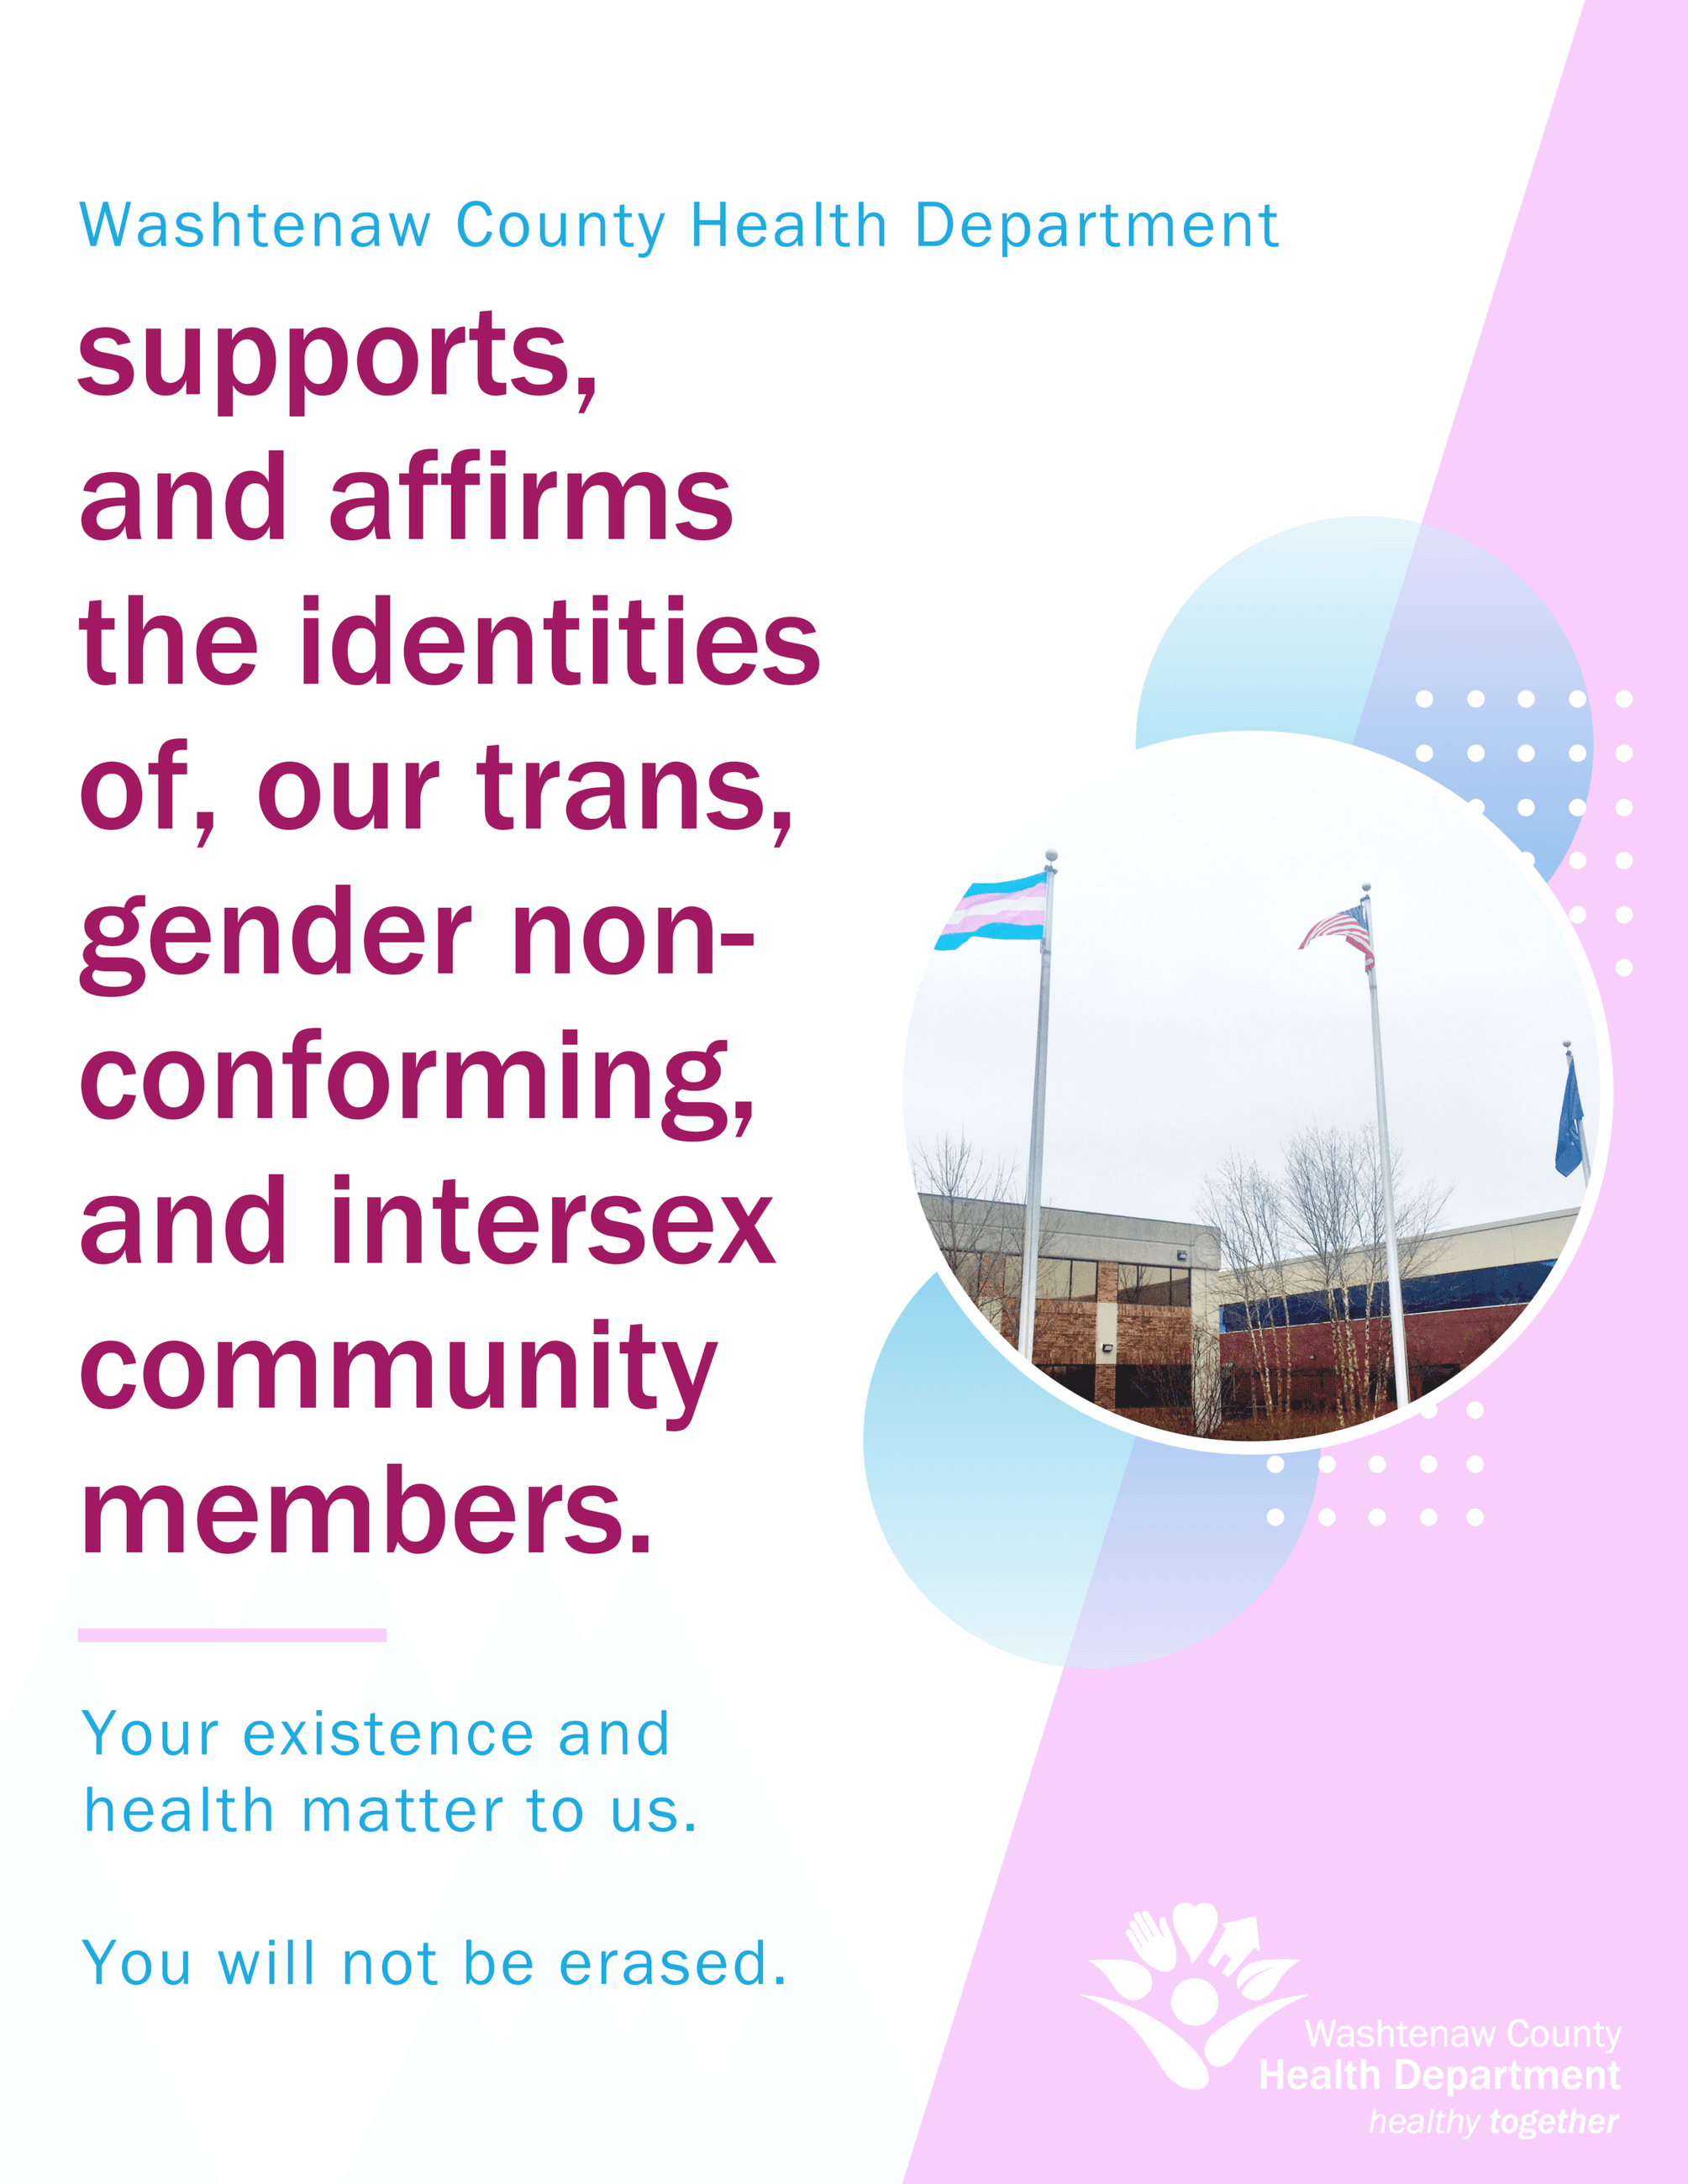 We Support our Trans, Gender Non-Conforming, and Intersex Community Members